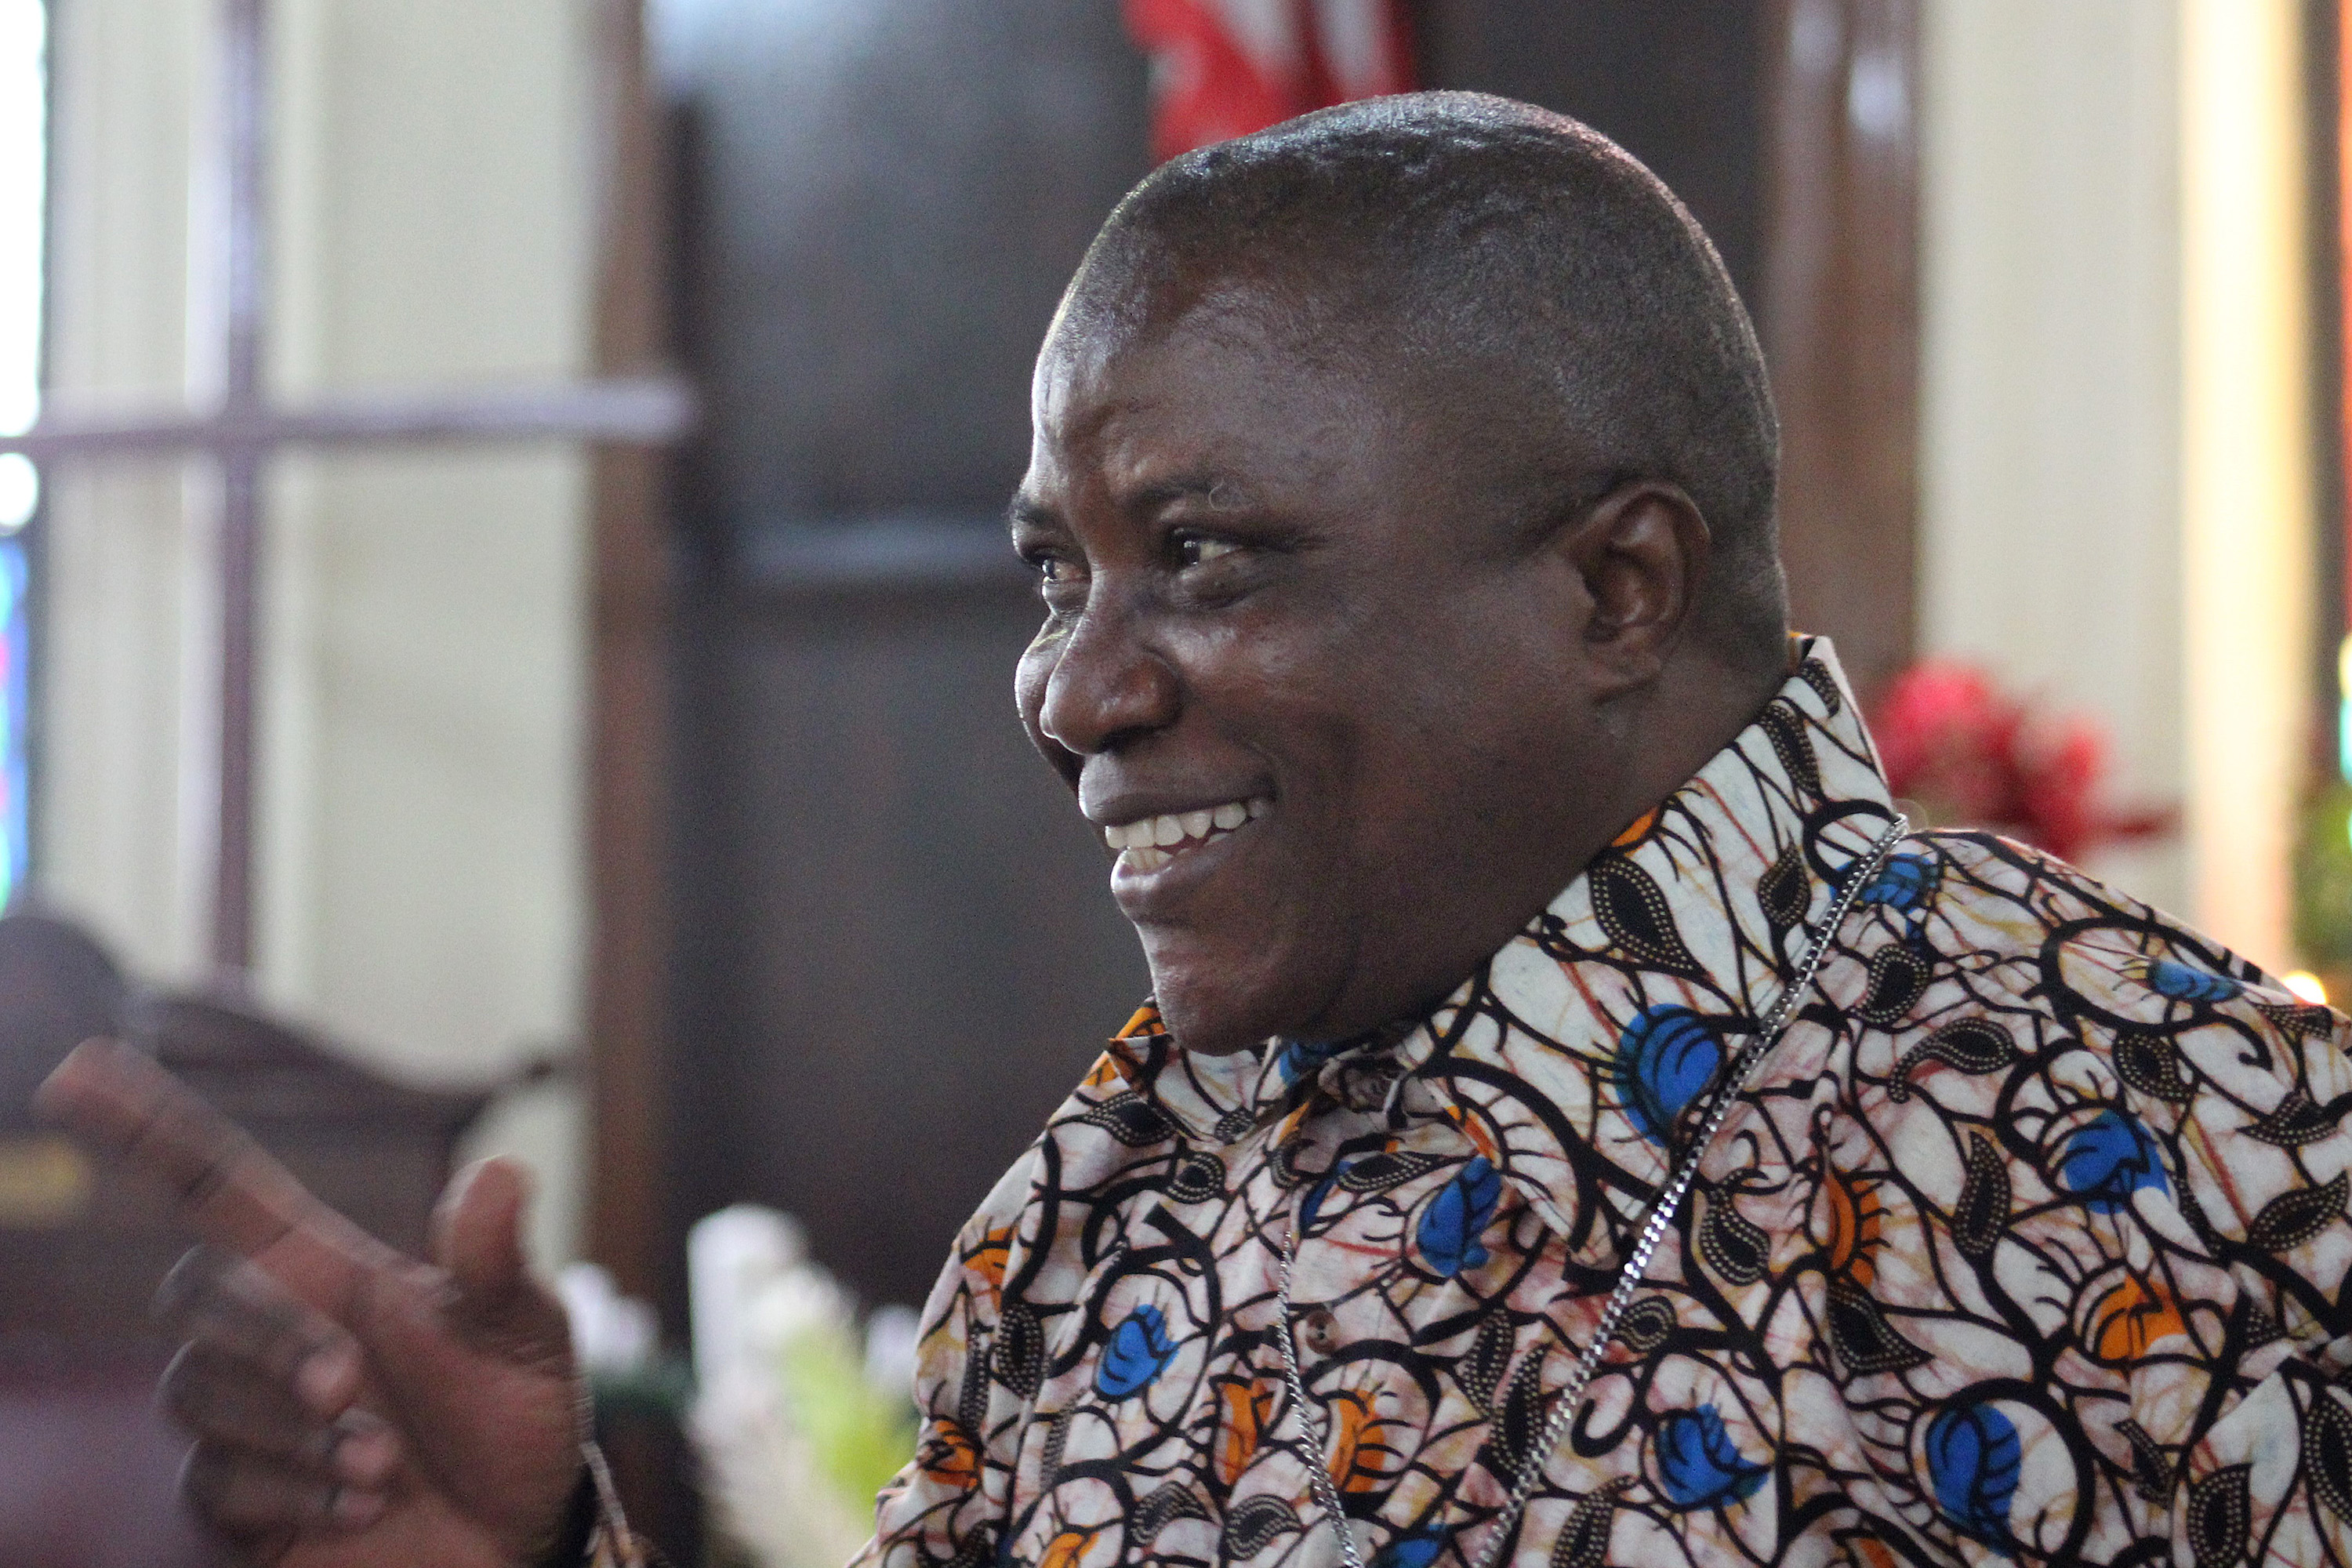 Bishop Samuel J. Quire Jr. at a program marking his first anniversary as bishop of the United Methodist Church for the Liberia area at First United Methodist Church in Monrovia, Dec. 31. Photo by Julu Swen, UMNS.